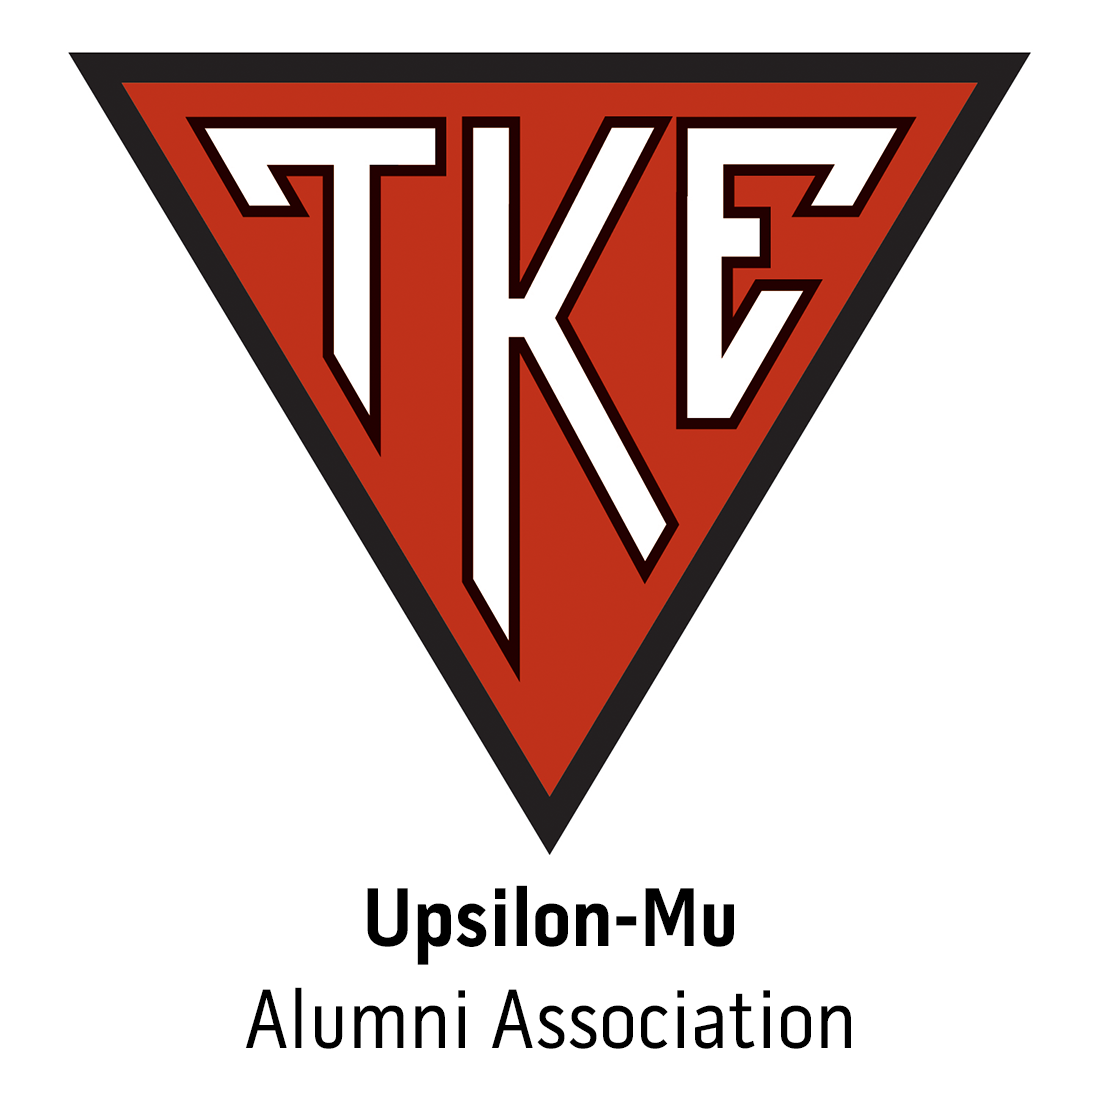 Upsilon-Mu Alumni Association at New York Institute of Technology-Manhattan